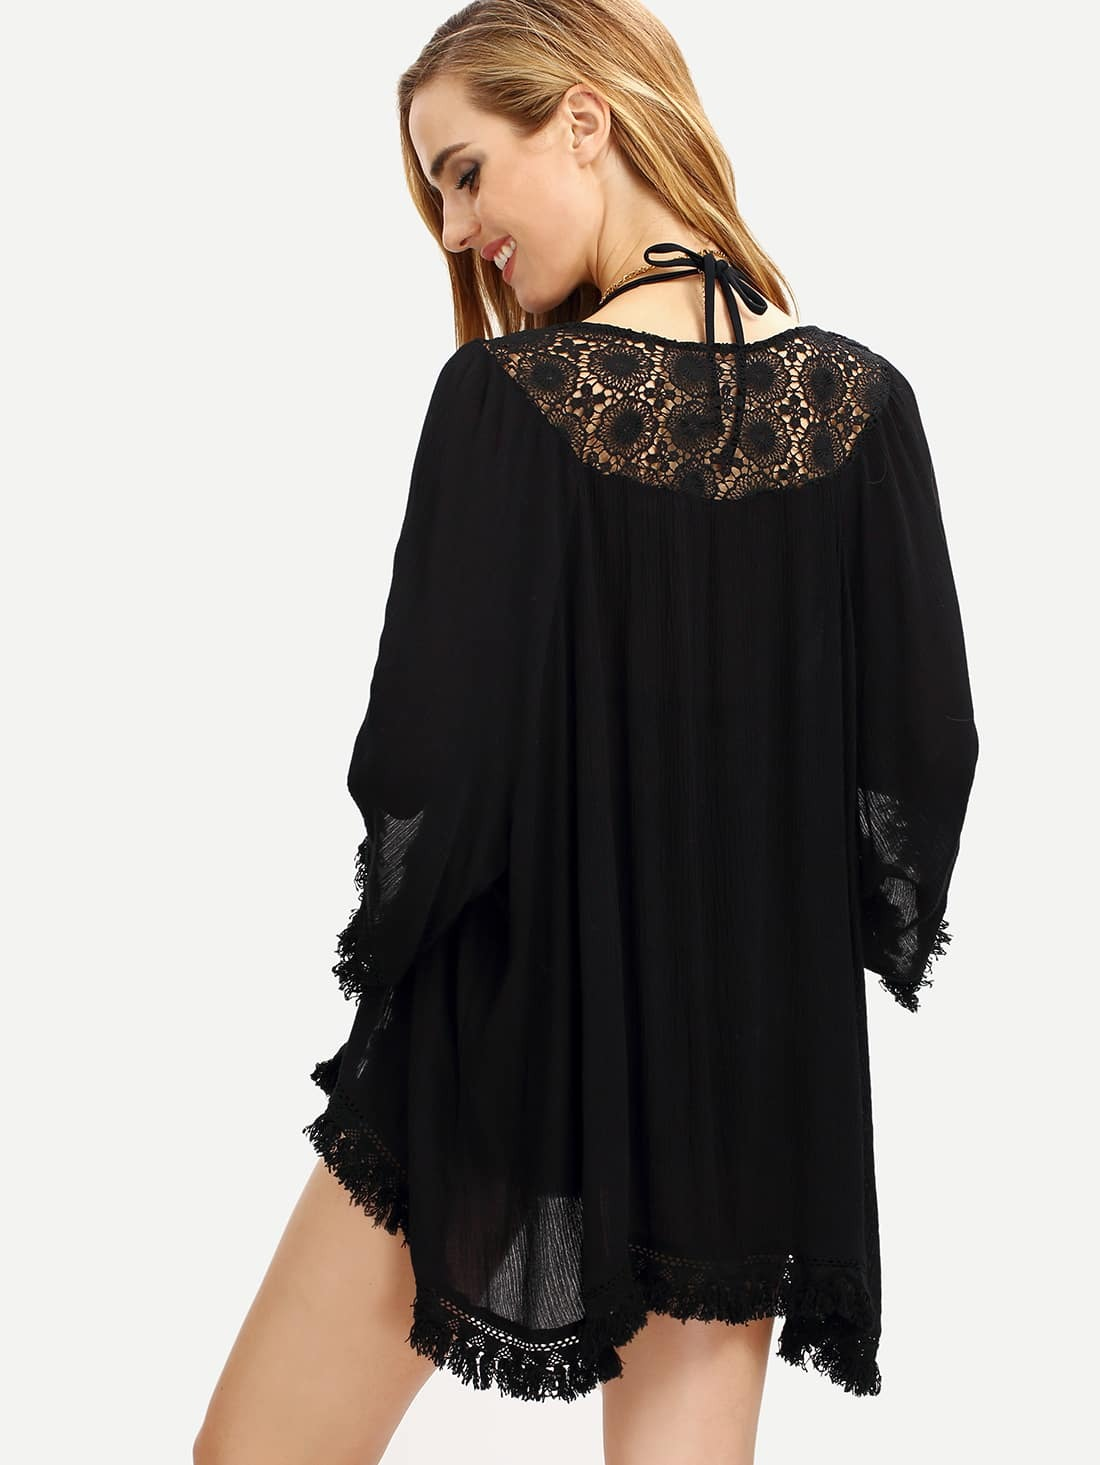 Find great deals on eBay for black fringe kimono. Shop with confidence.